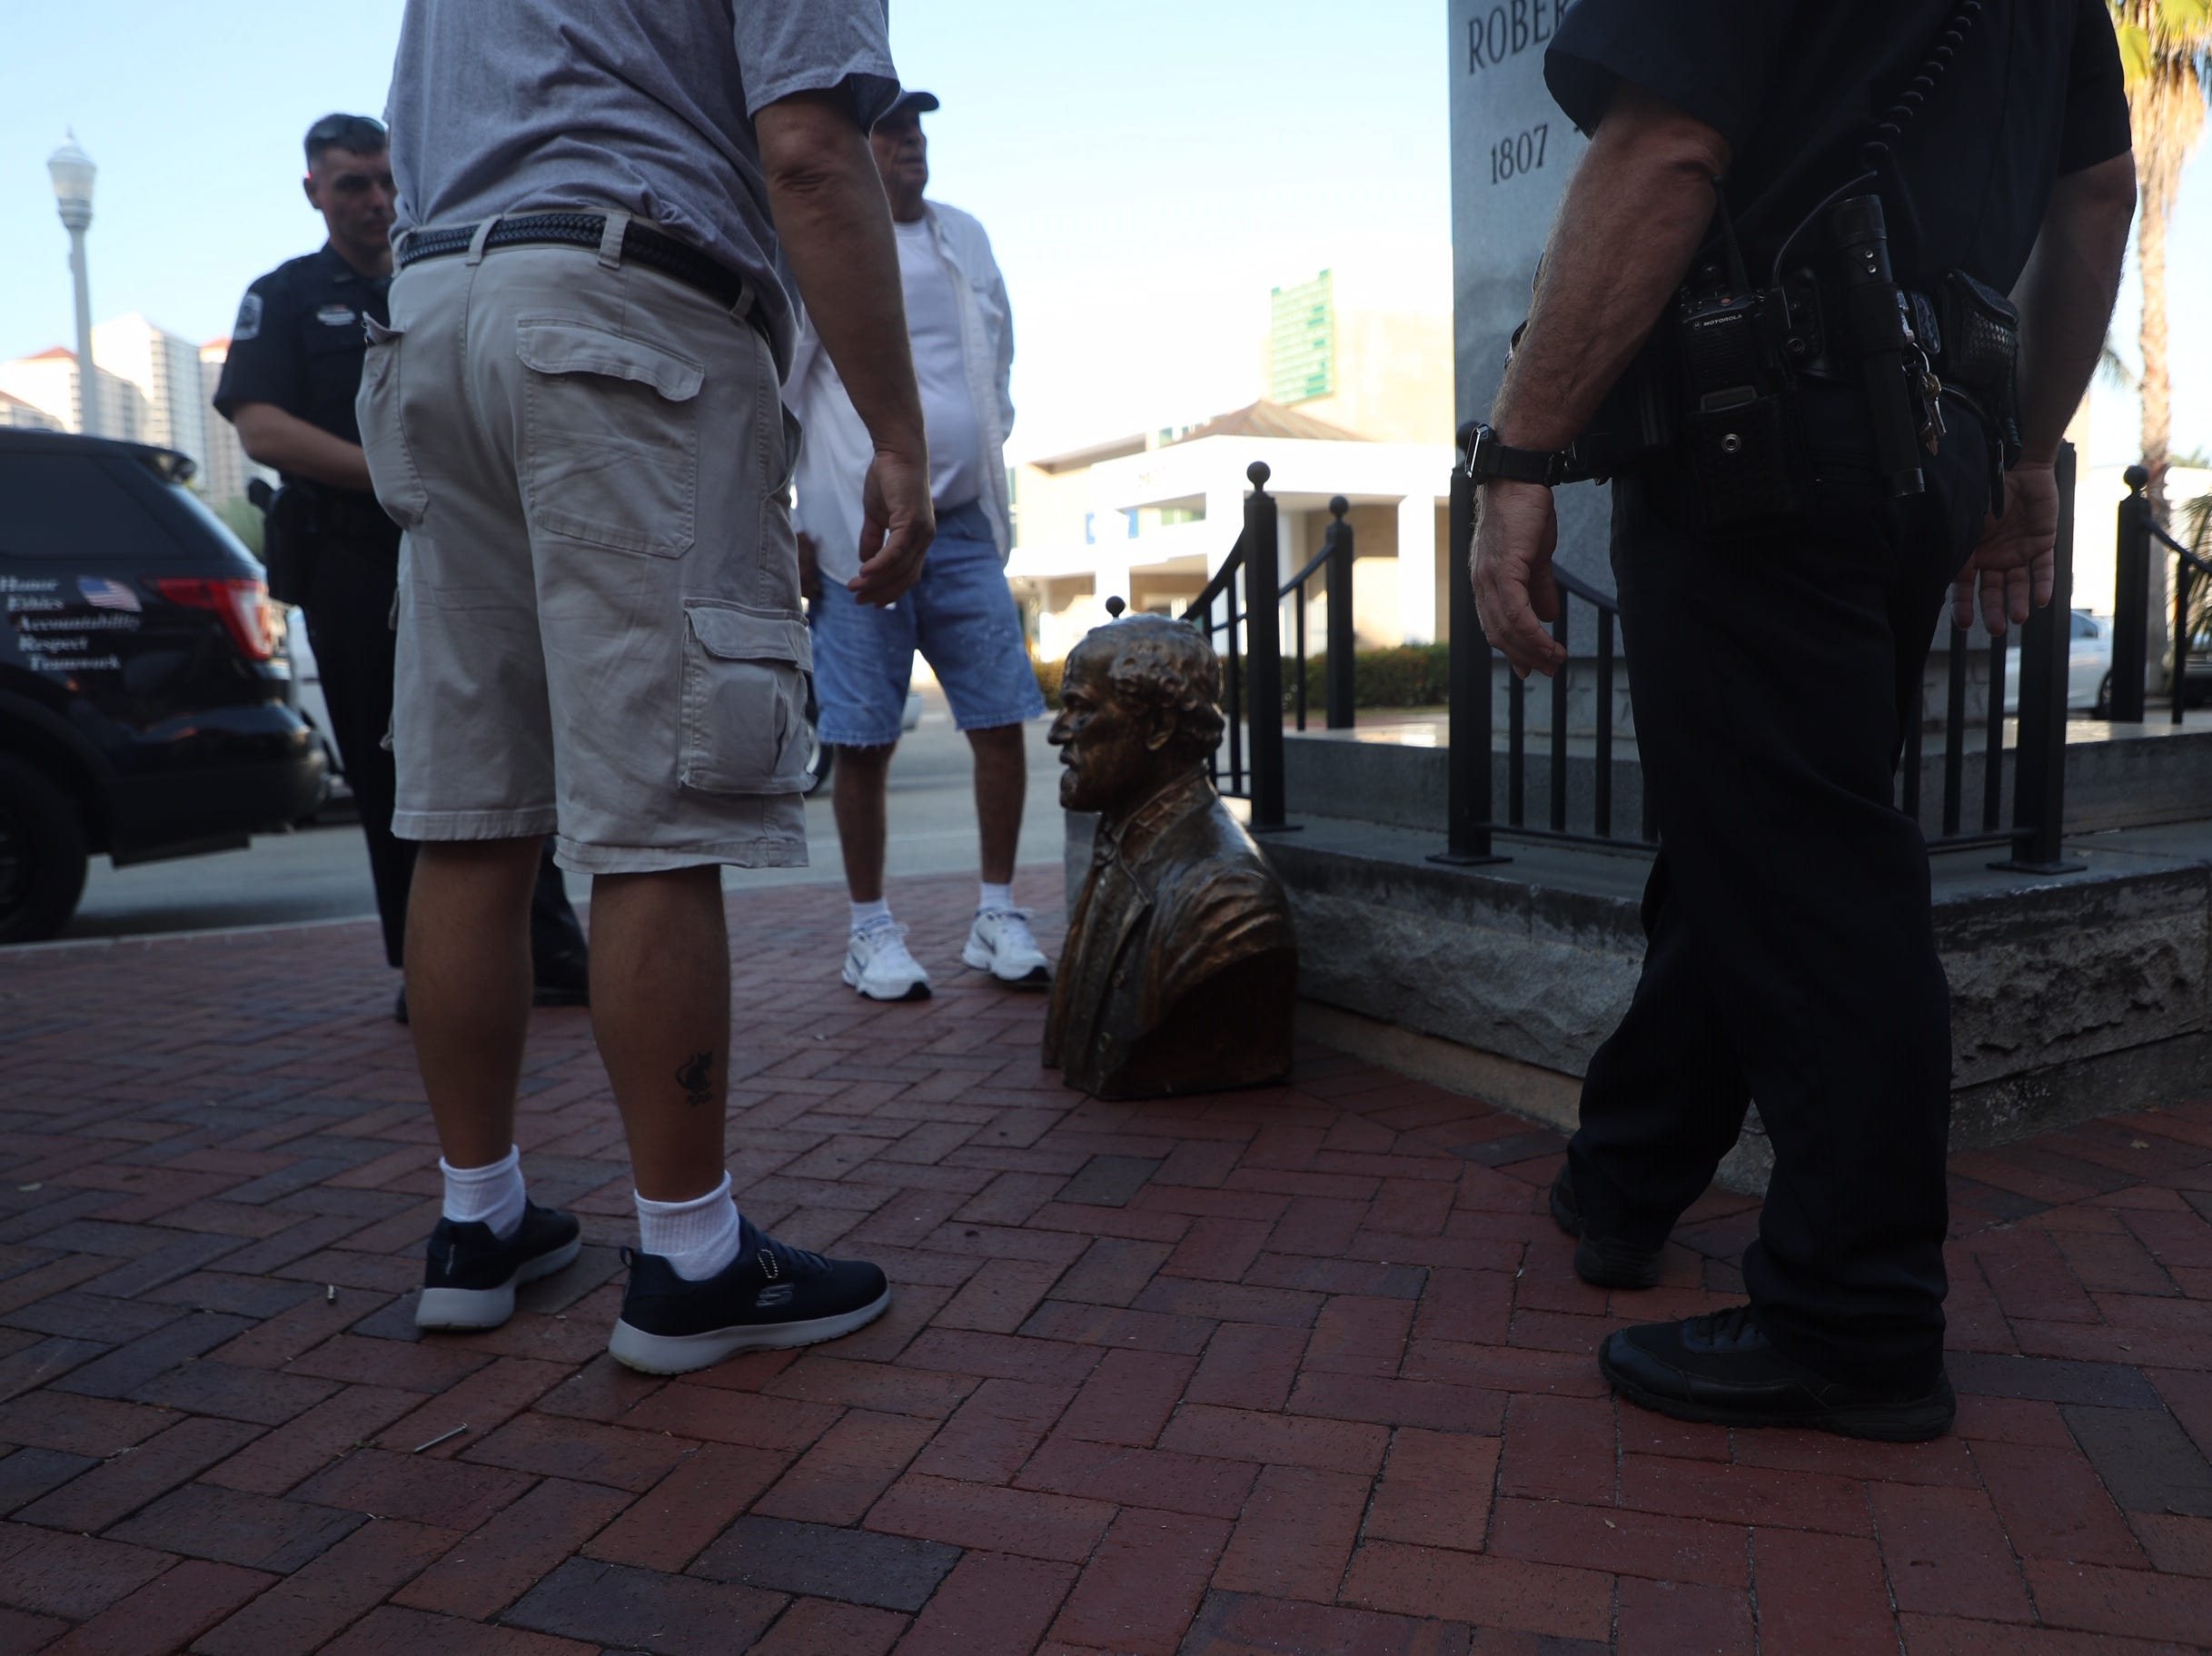 Members of the Fort Myers Police Department and members of the Sons of Confederate Veterans were at the scene of the toppled Robert E. Lee bust in downtown Fort Myers on Tuesday, March 12, 2019. It was found on the ground. The police are investigating.